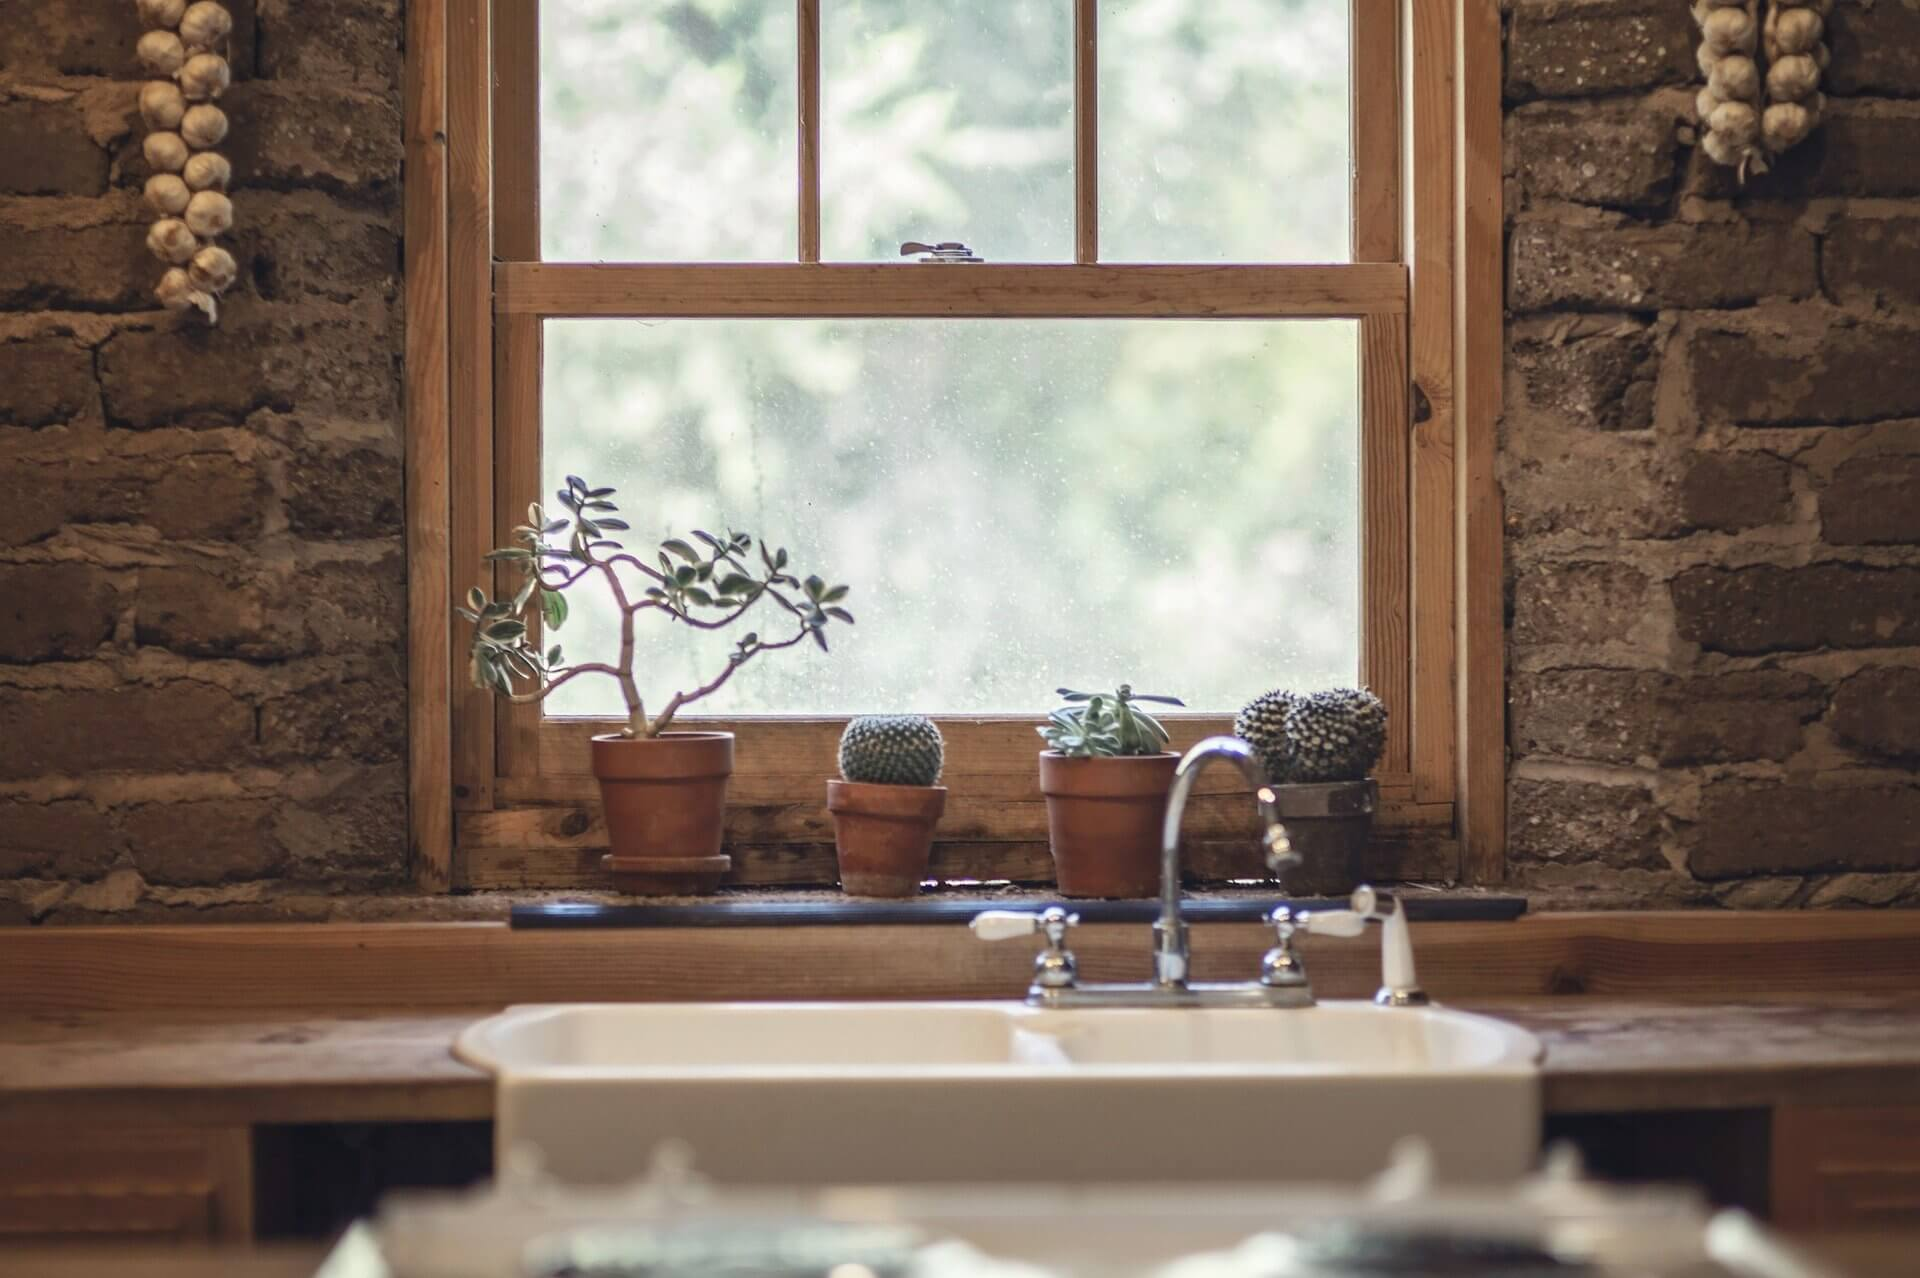 new wood window replacement in home kitchen